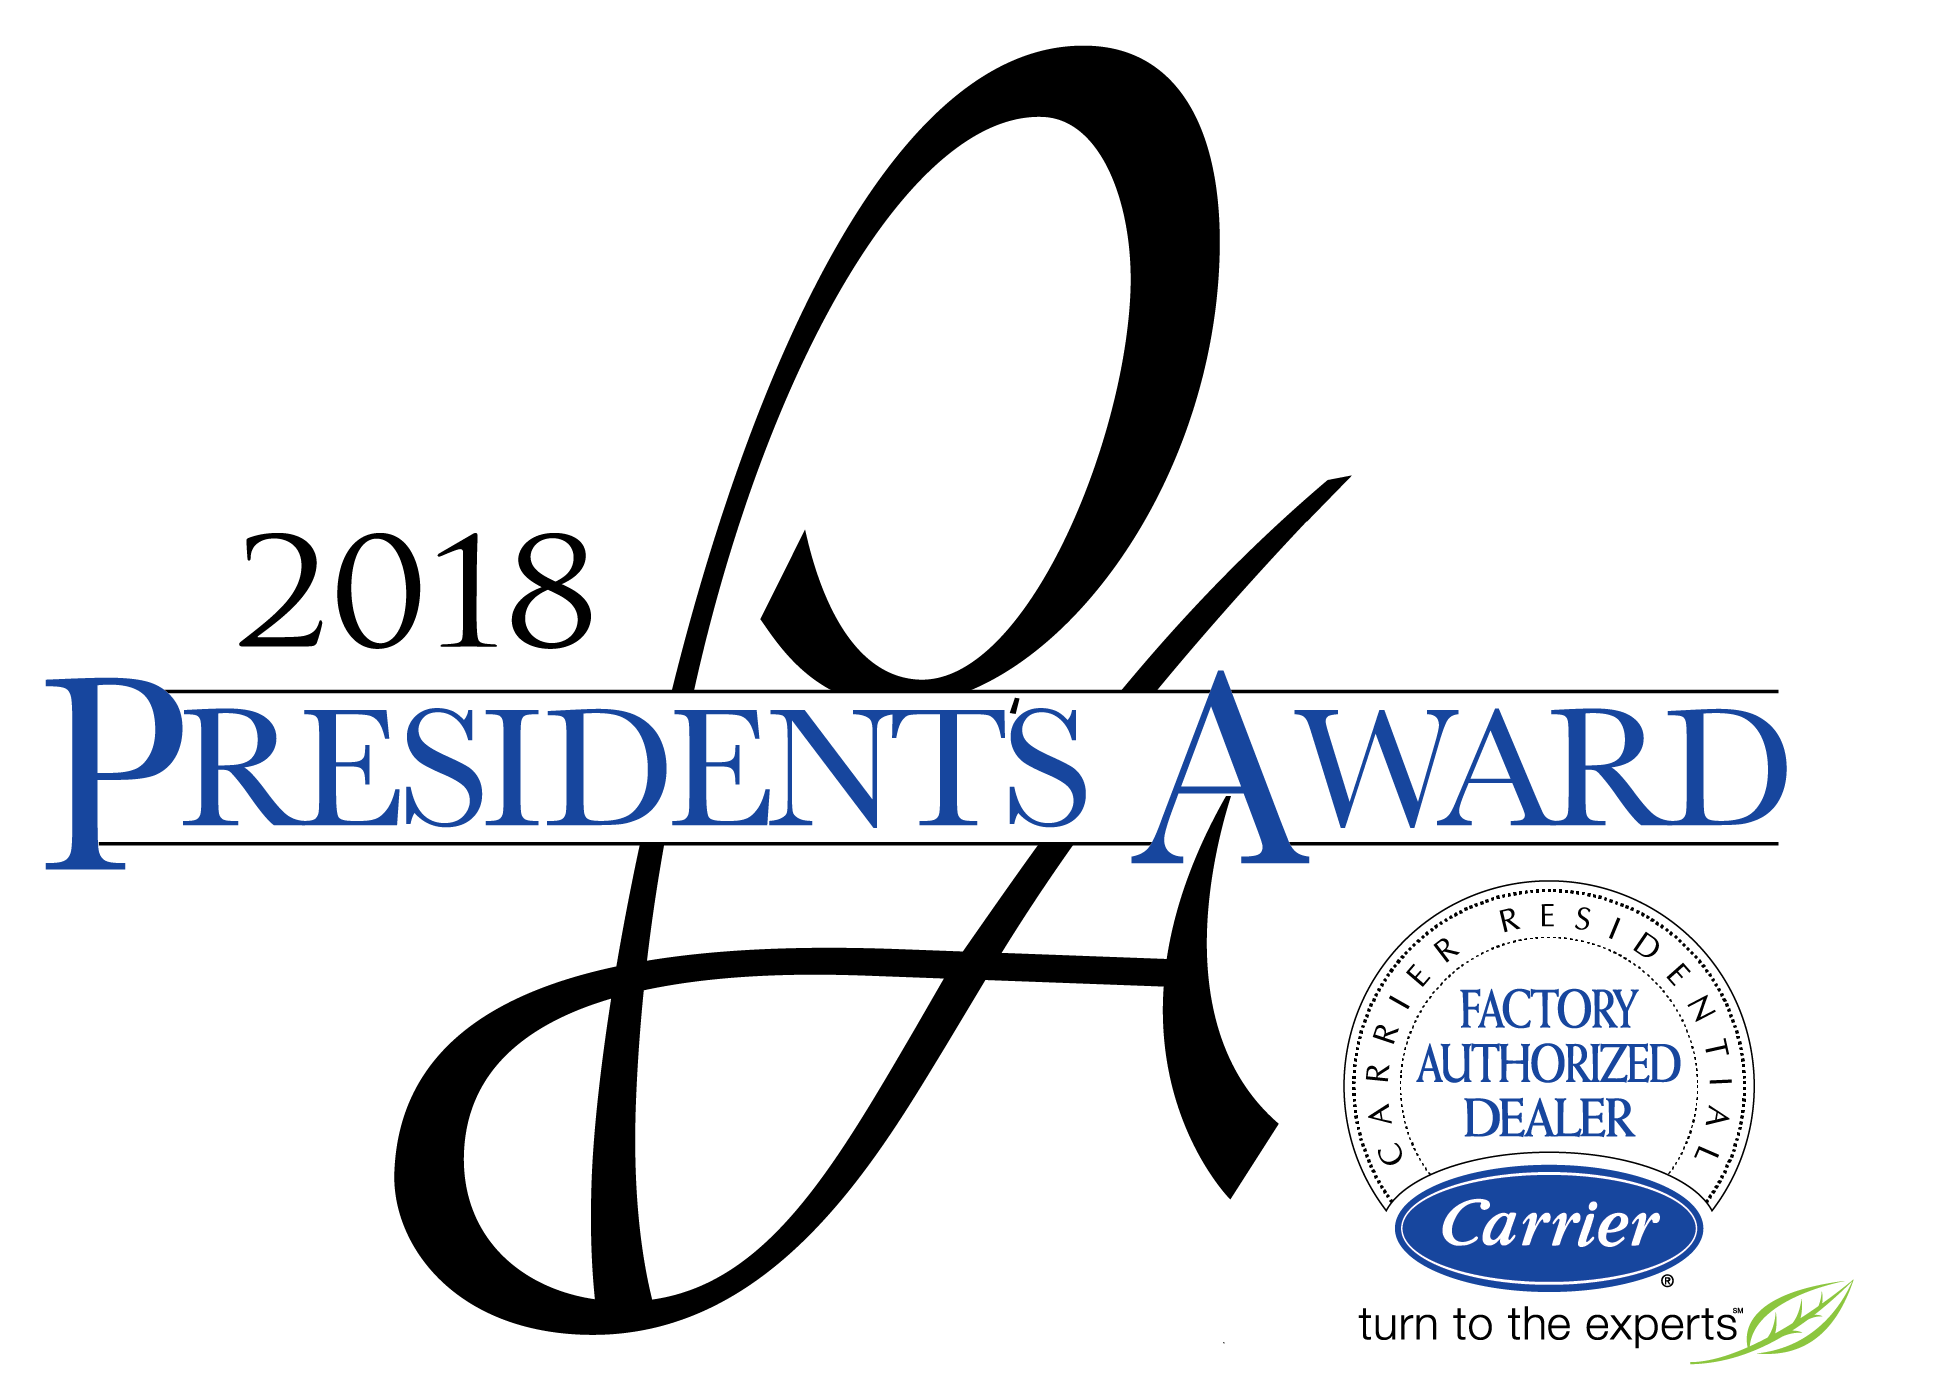 2018 presidents award logo